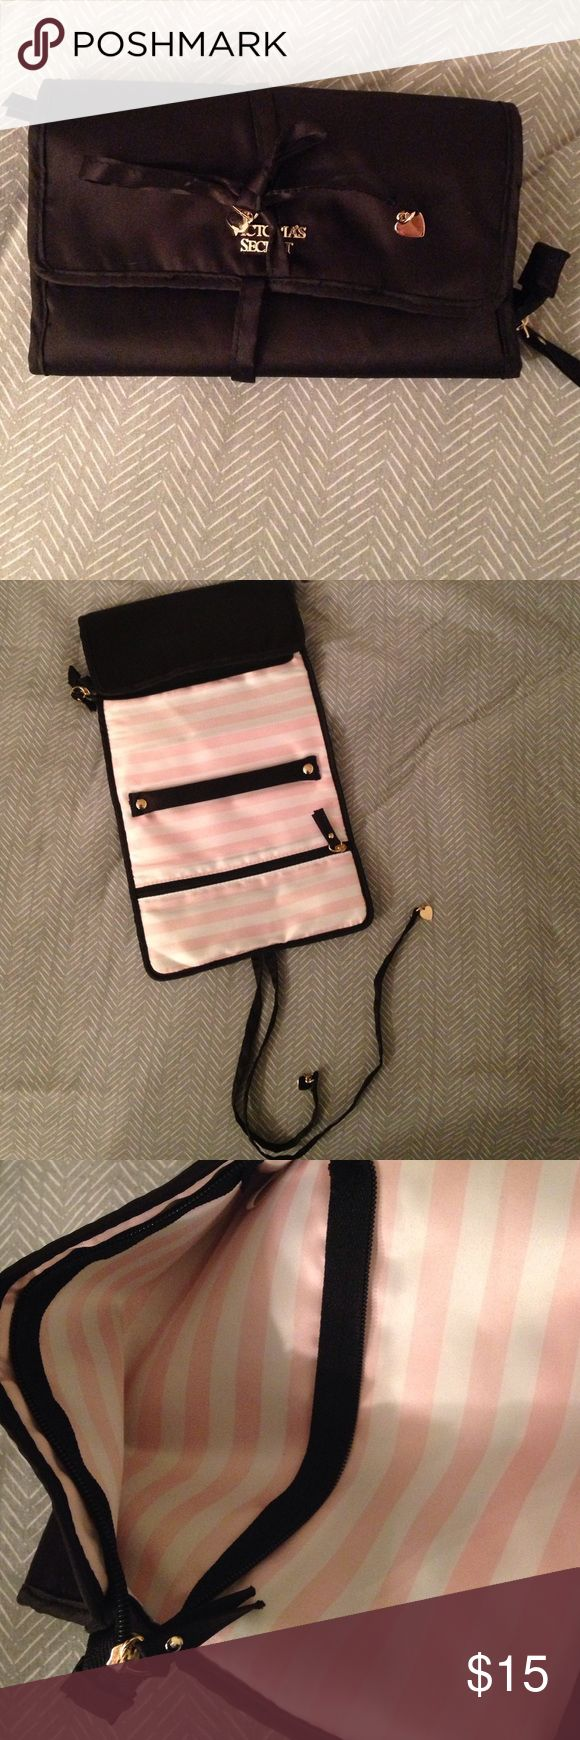 Victoria's Secret Jewelry Bag Great condition. Satin material. Two zipper compartments. Rolls up and ties for on the go jewelry storage. Victoria's Secret Jewelry